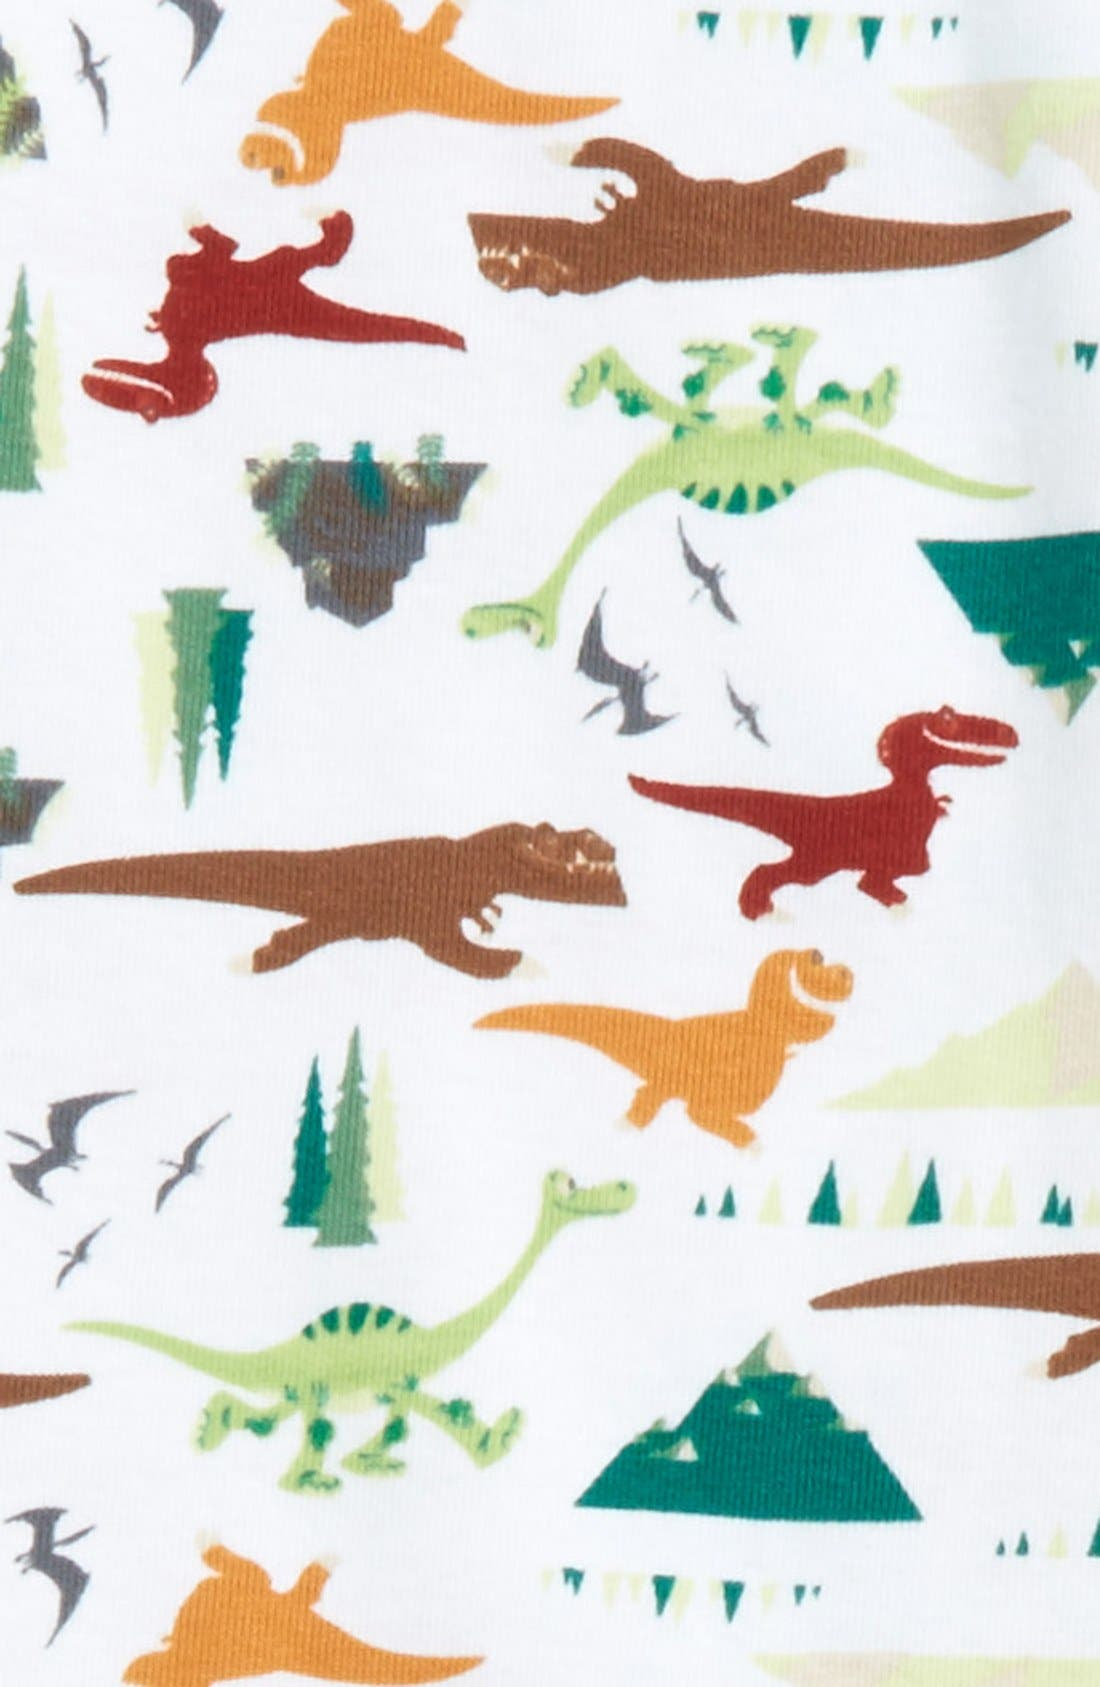 'Disney<sup>®</sup> - The Good Dinosaur' Organic Cotton Two-Piece Fitted Pajamas,                             Alternate thumbnail 2, color,                             311